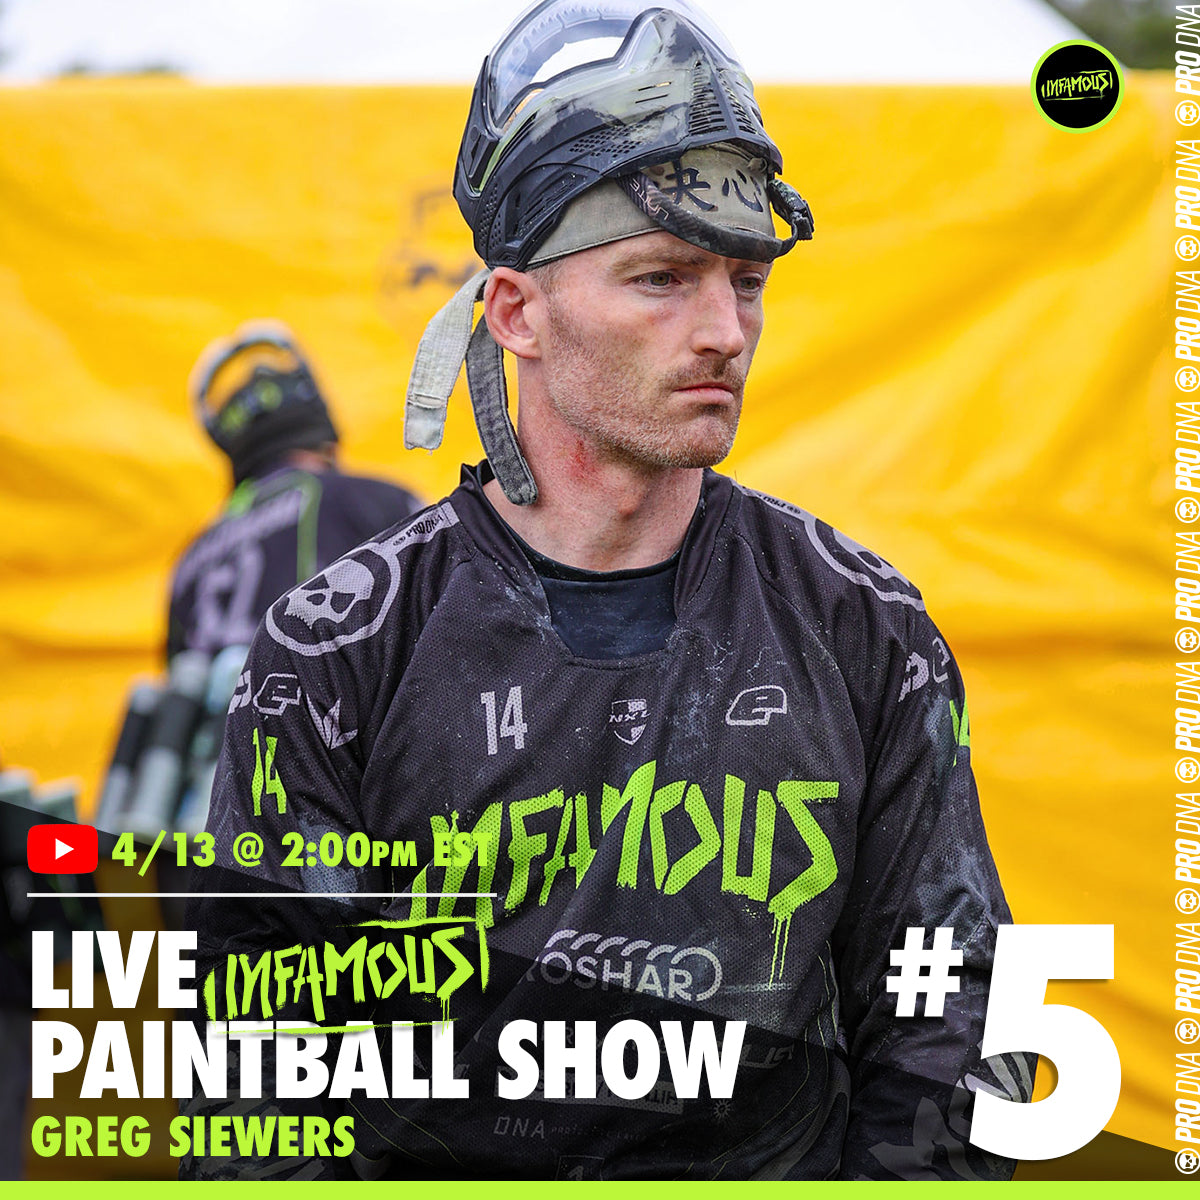 Infamous Live Paintball Show #5 - Greg Siewers